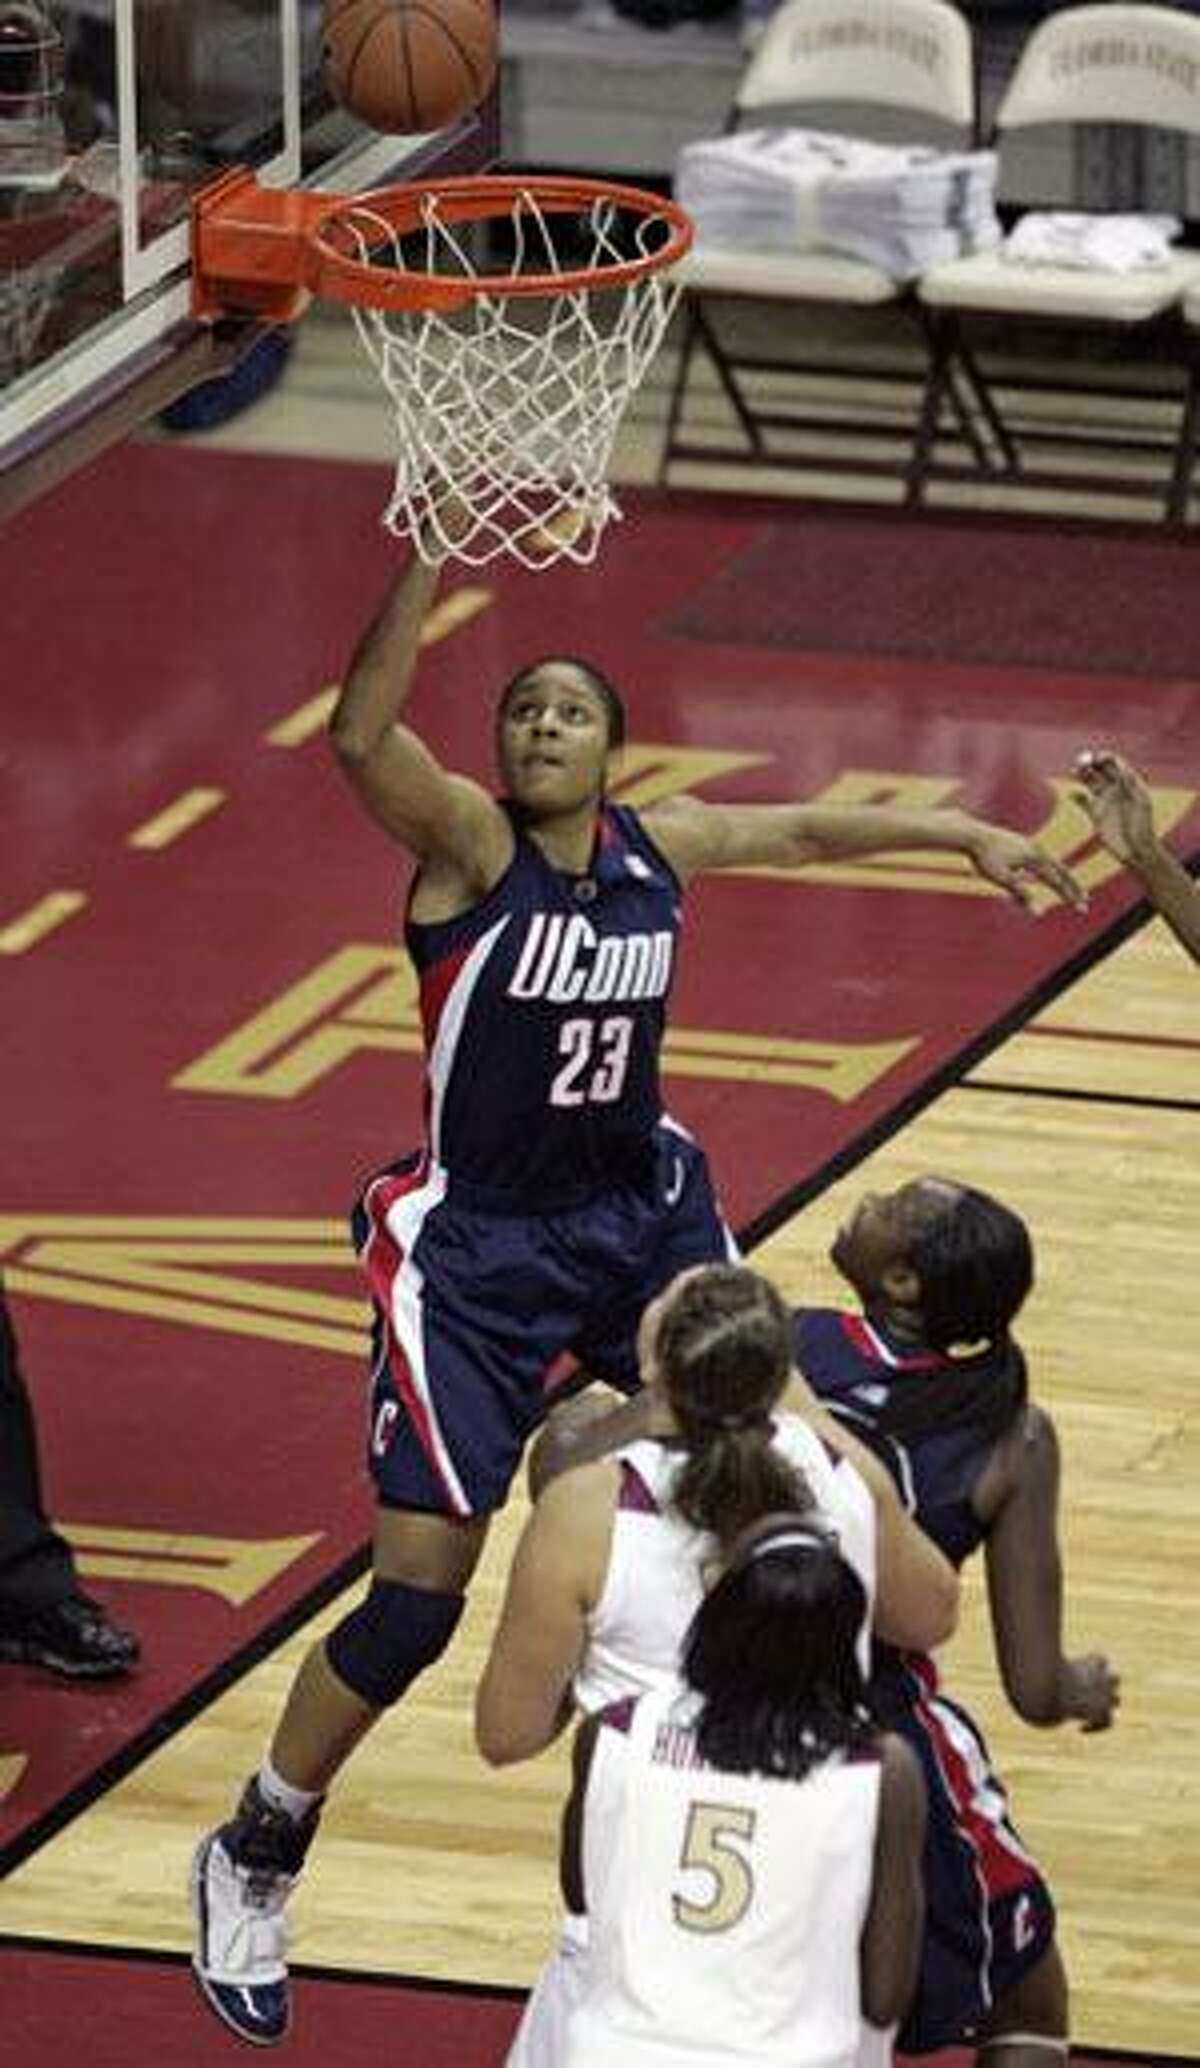 Connecticut's Maya Moore watches her shot during the second half against Florida State Monday in Tallahassee, Fla. Connecticut won 78-59.